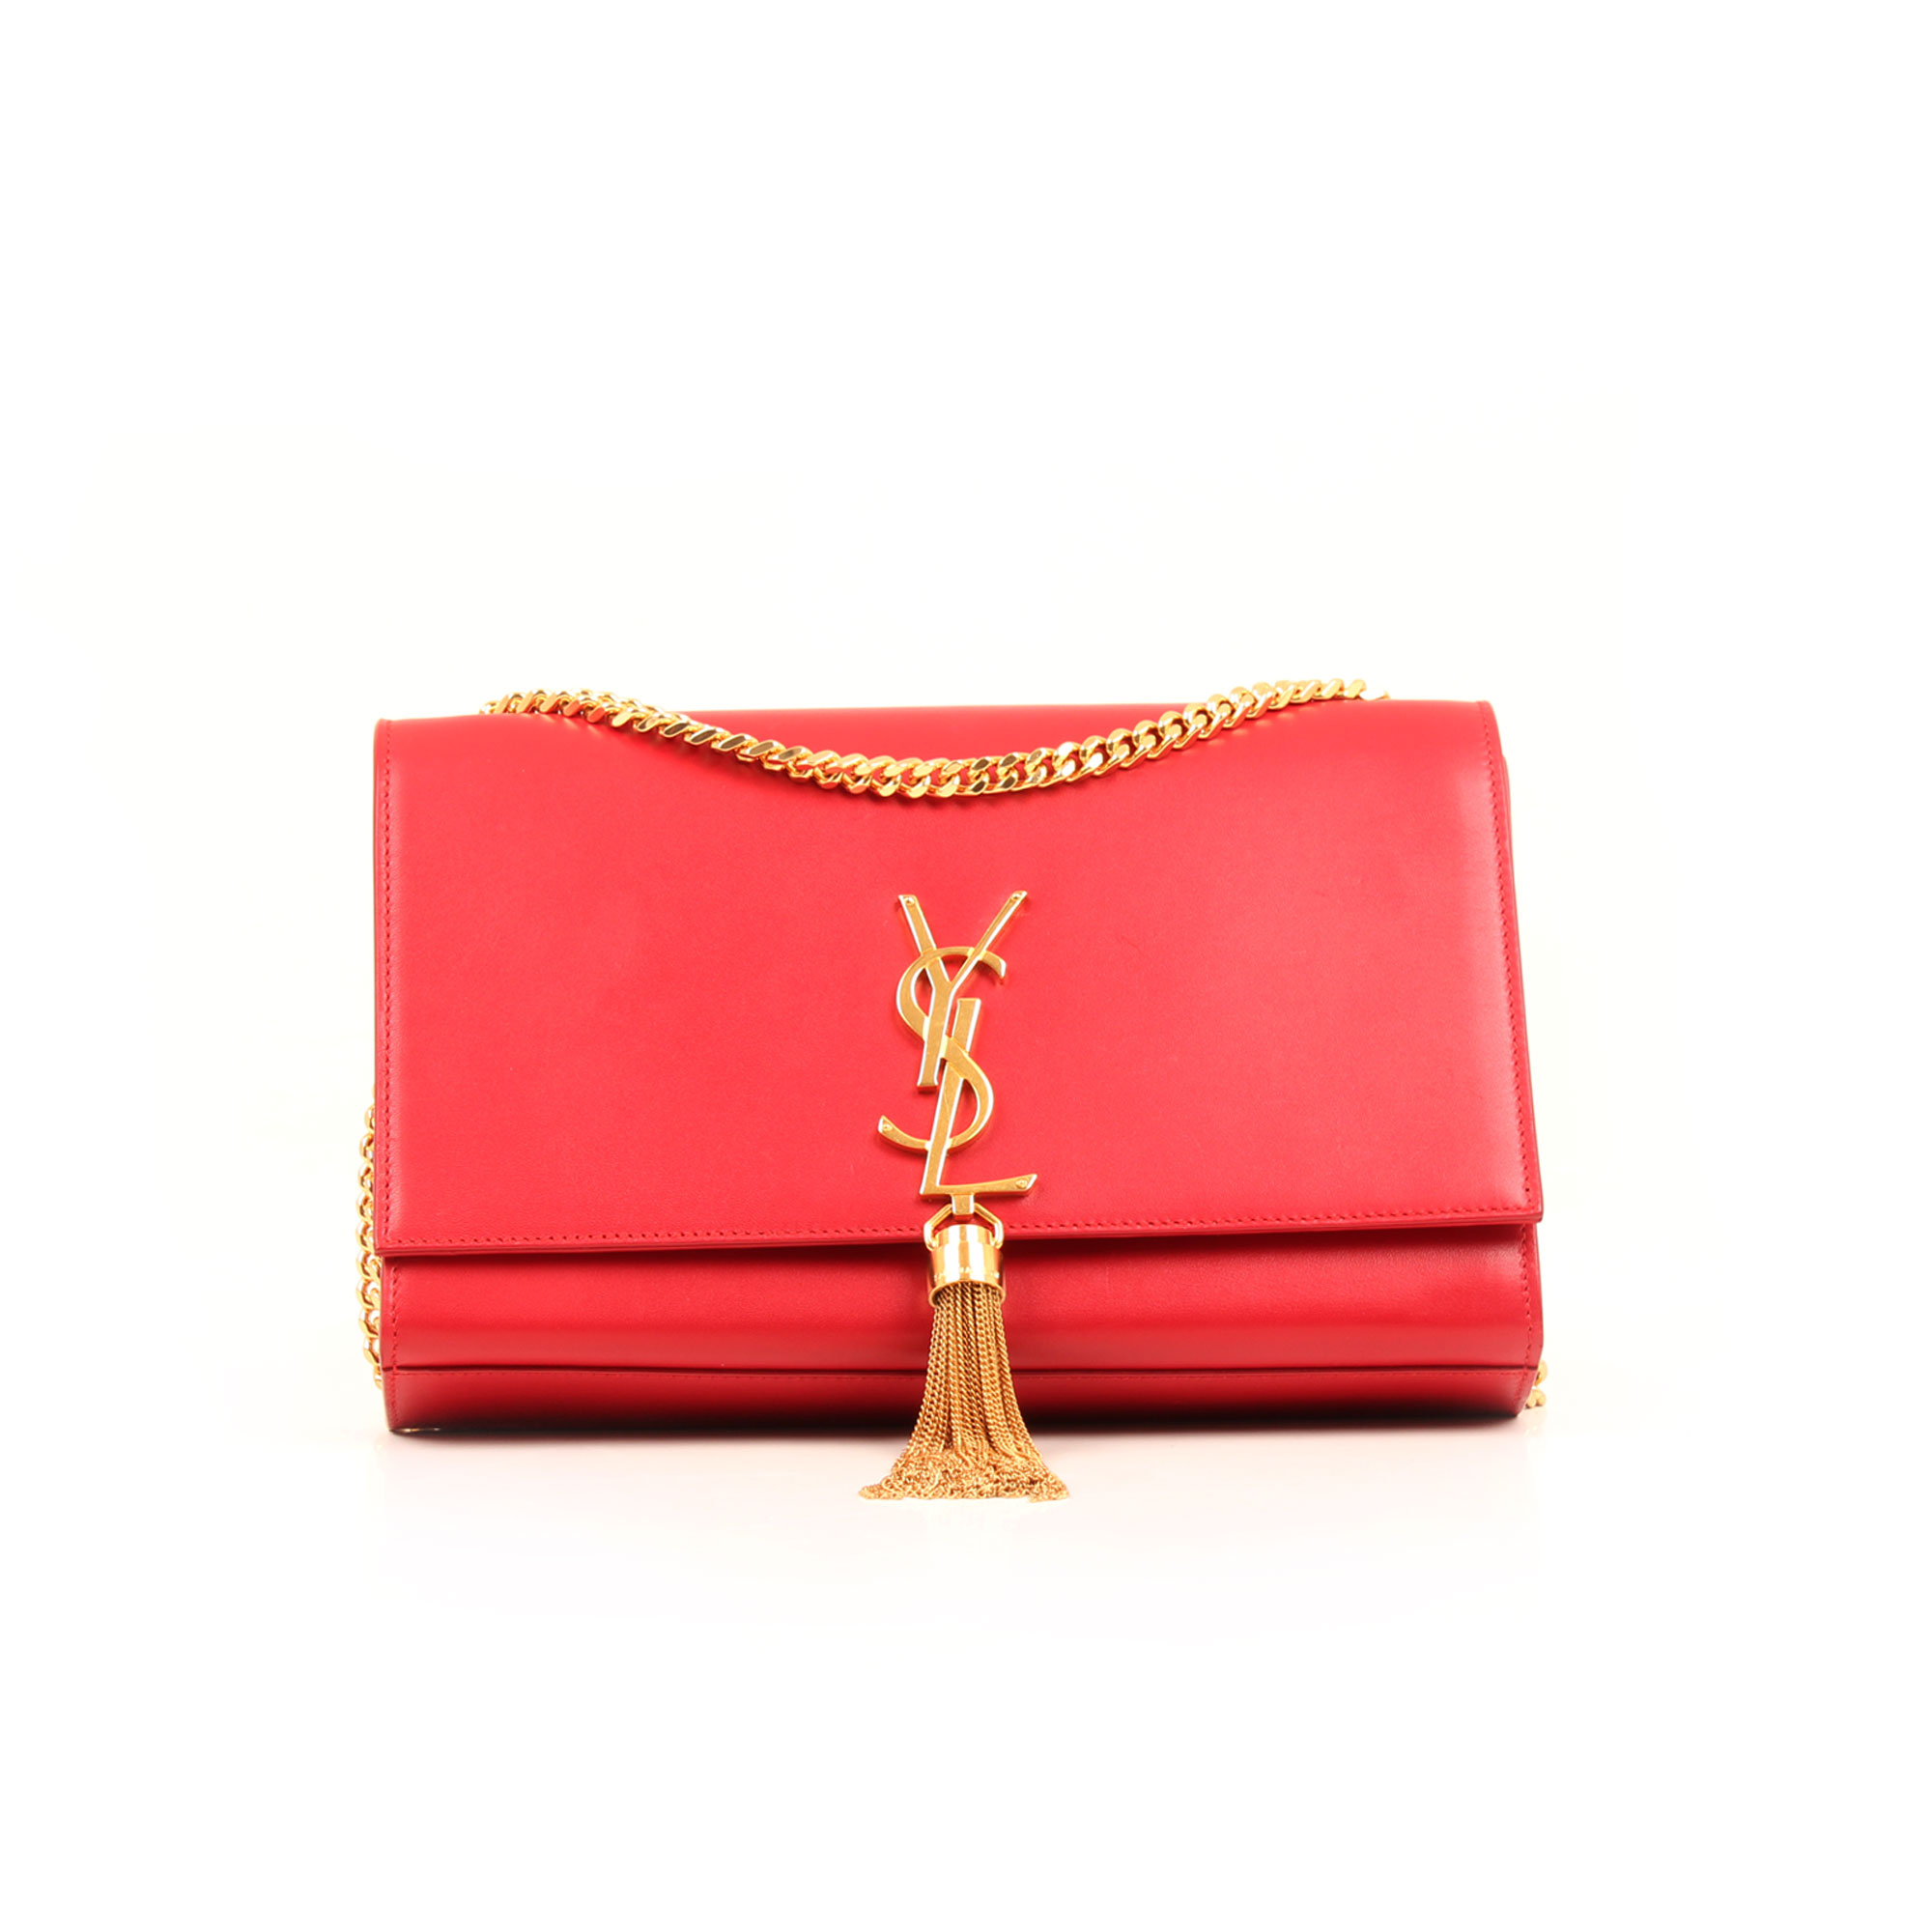 Front image of ysl kake medium bag red calfskin leather